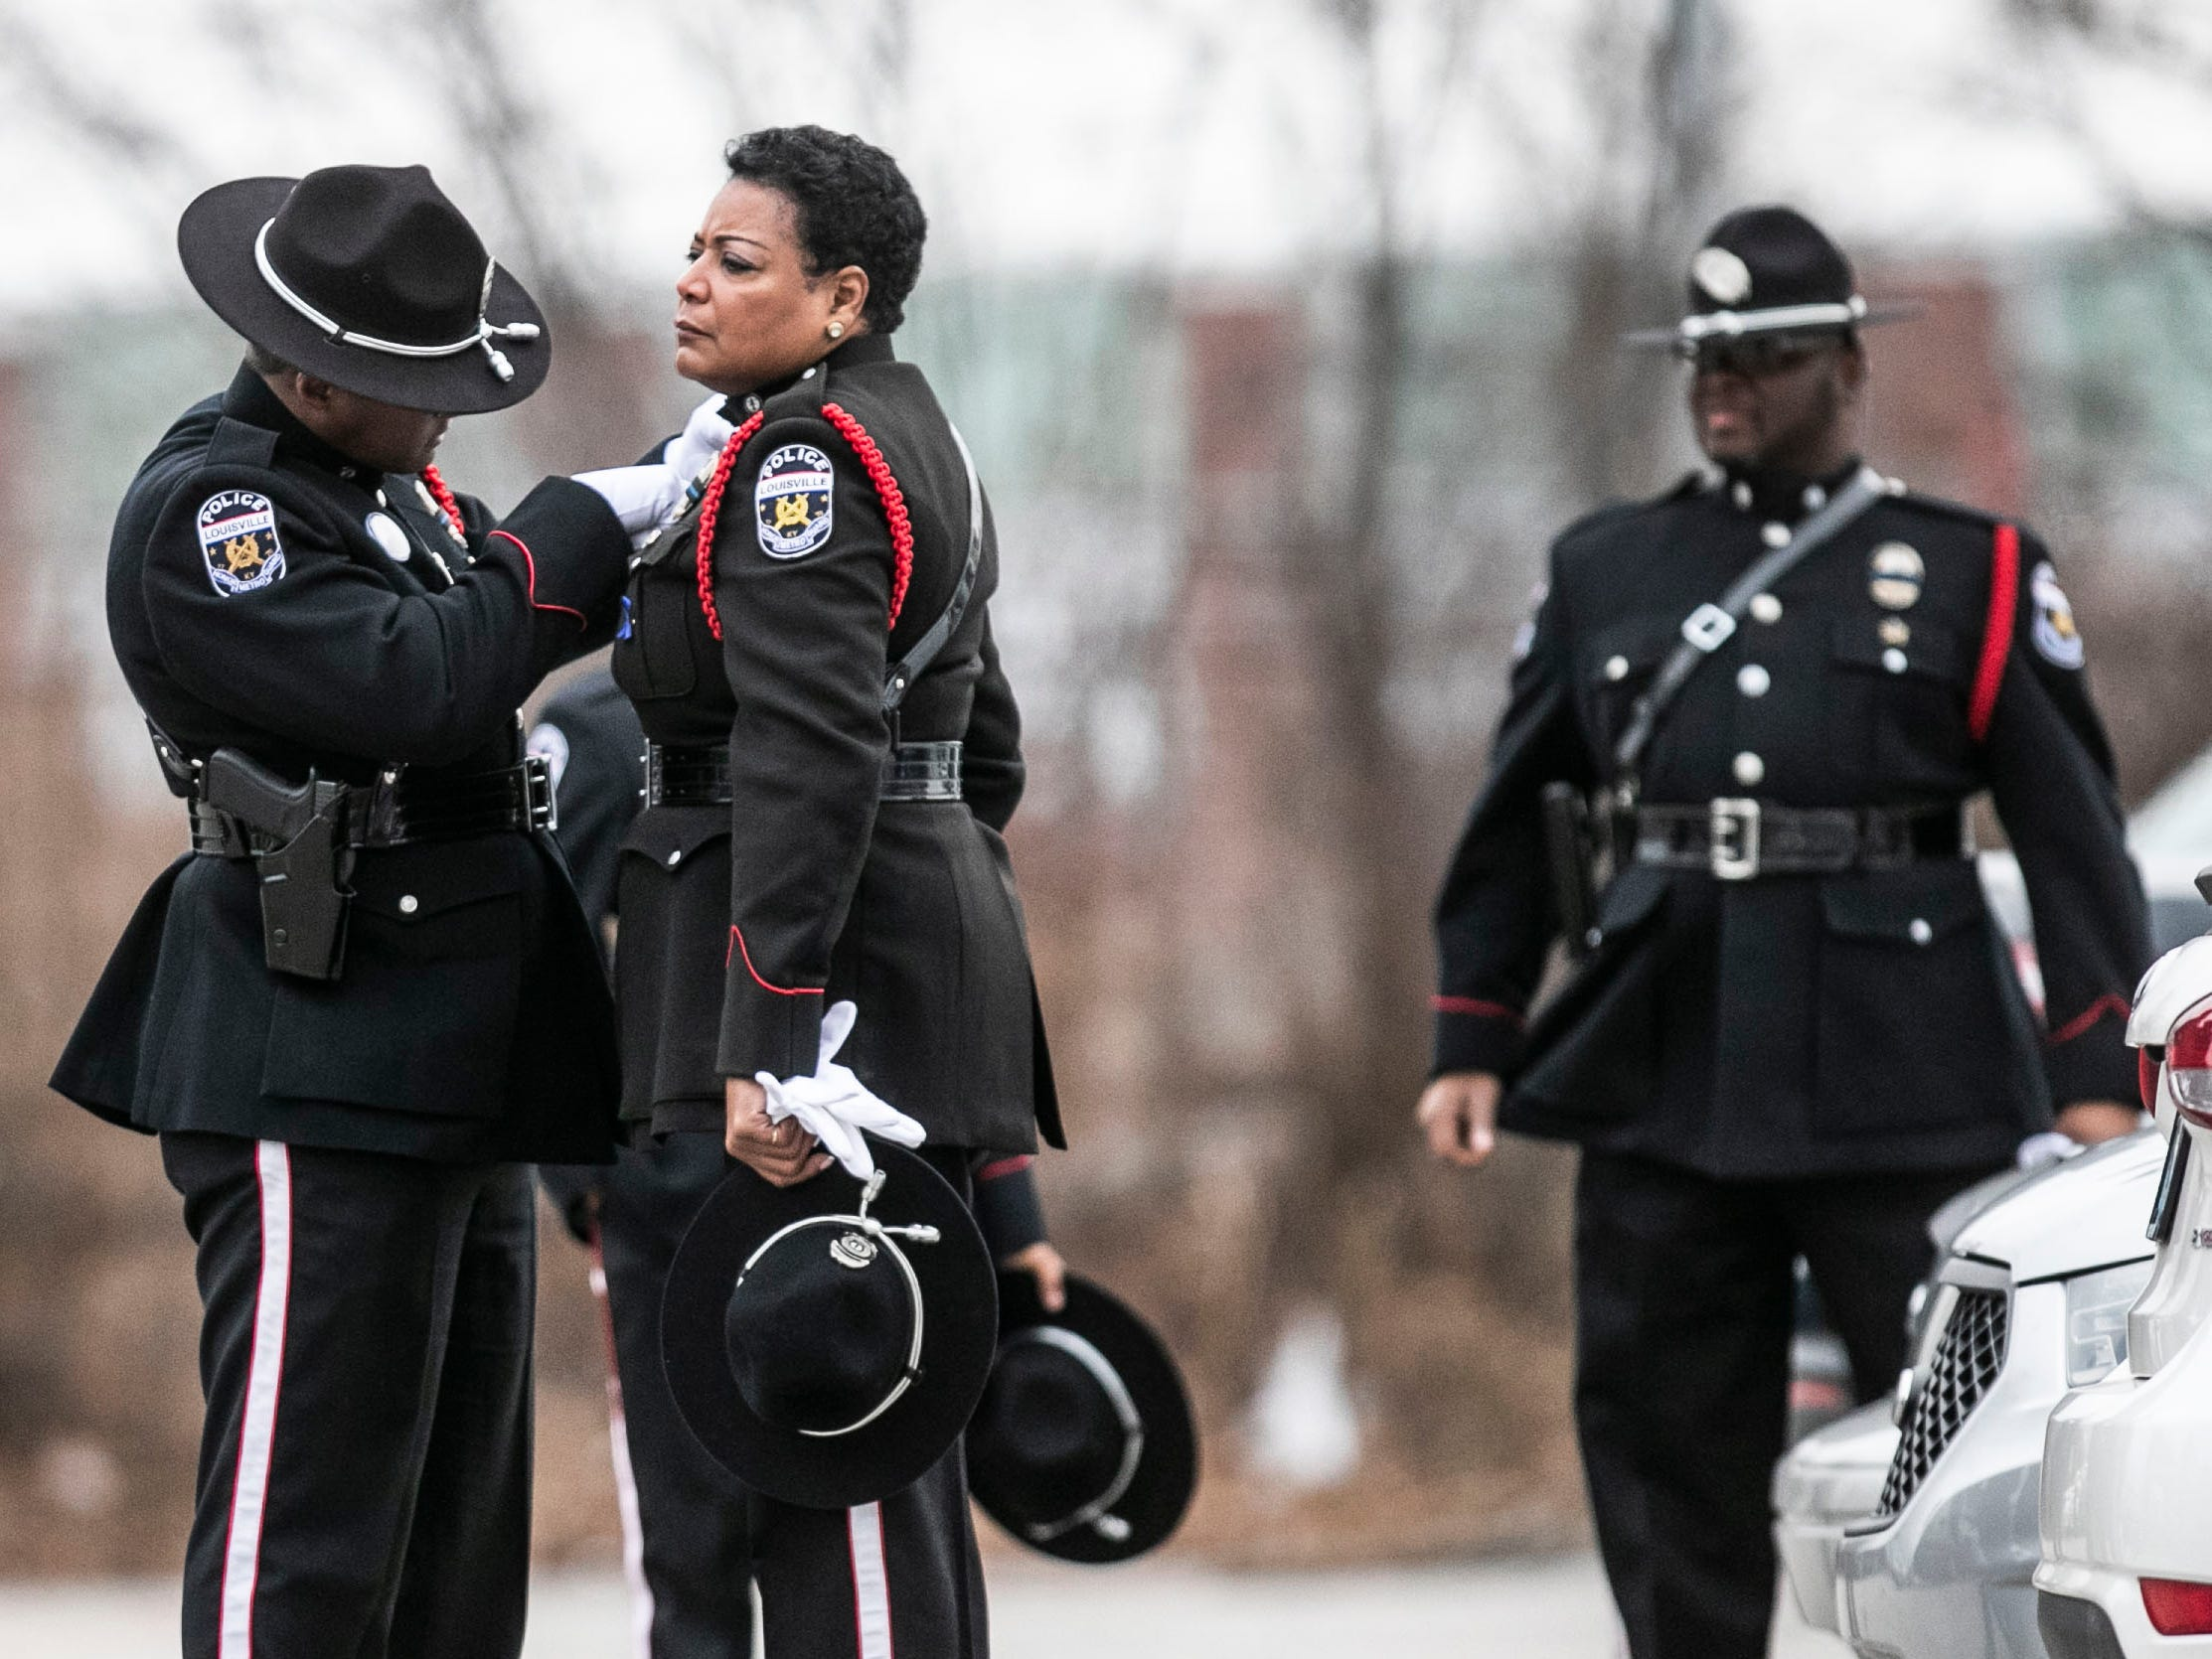 LMPD officers prepare before the procession for LMPD Detective Deidre Mengedoht Saturday morning. Dec. 29, 2018